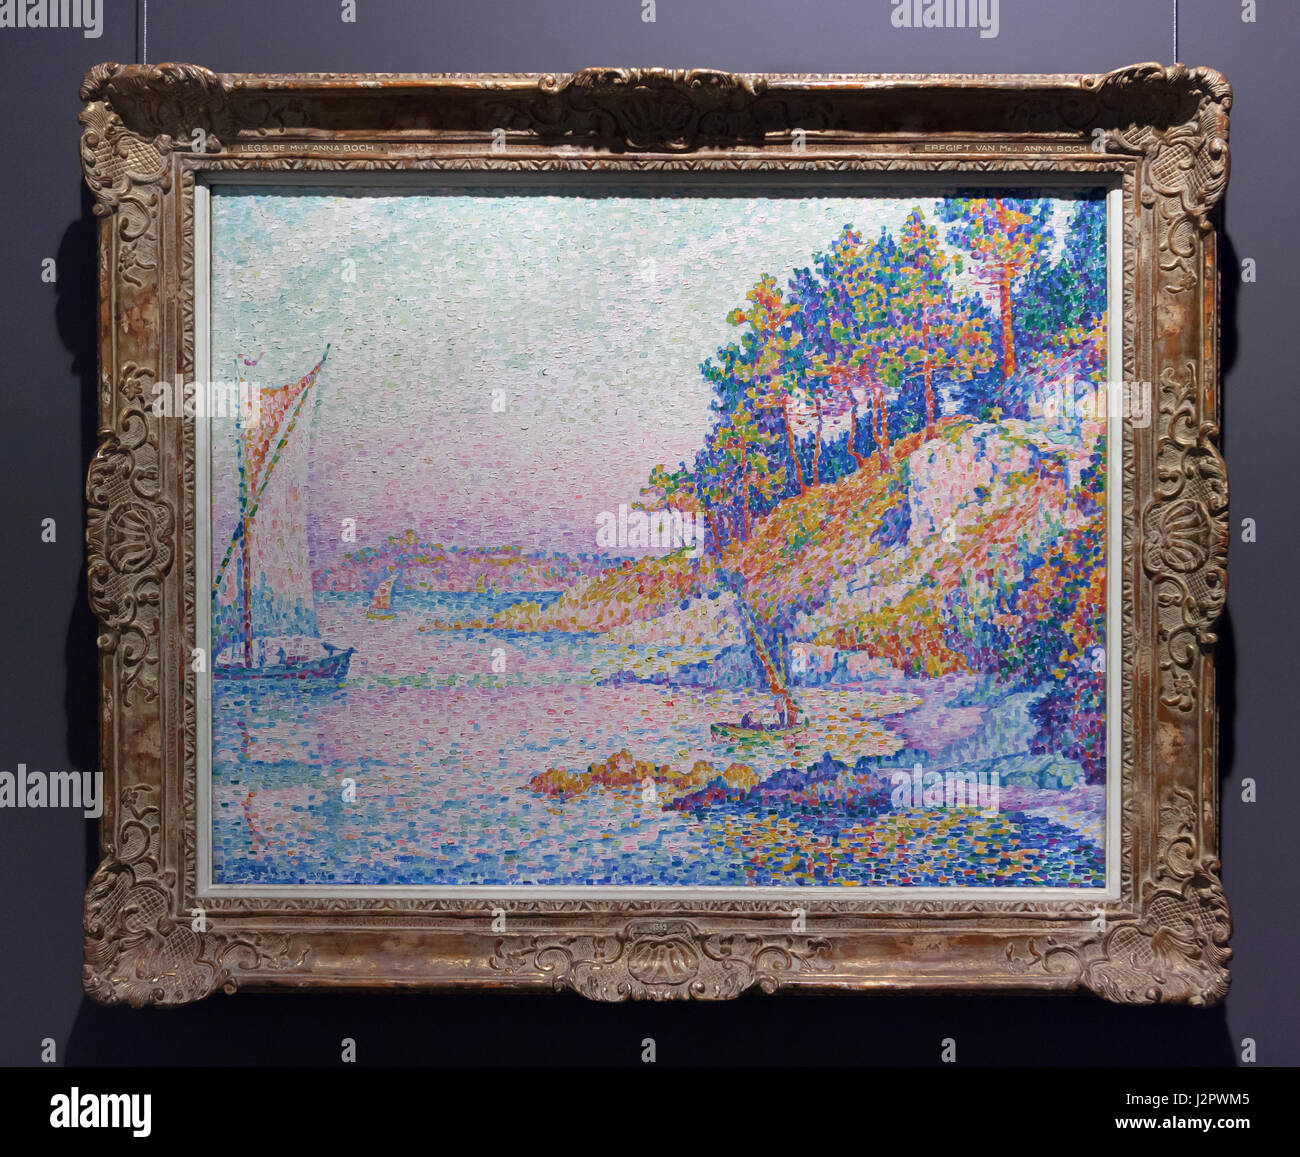 Painting 'The Calanque' ('The Bay') by French Neo-Impressionist painter Paul Signac (1906) on display in the Royal Stock Photo